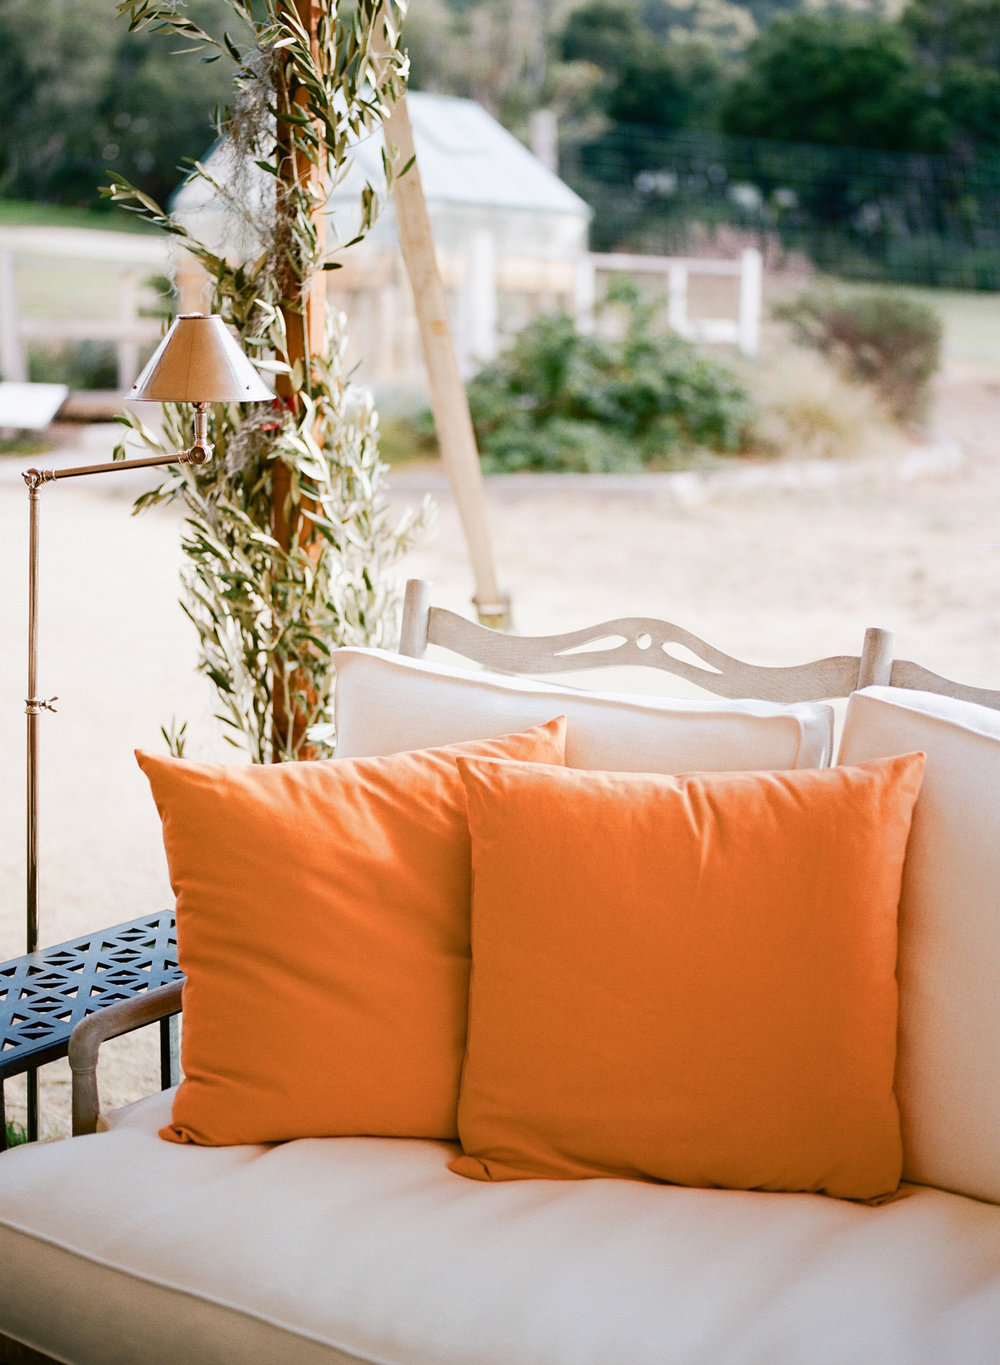 27-orange-pillows.jpg